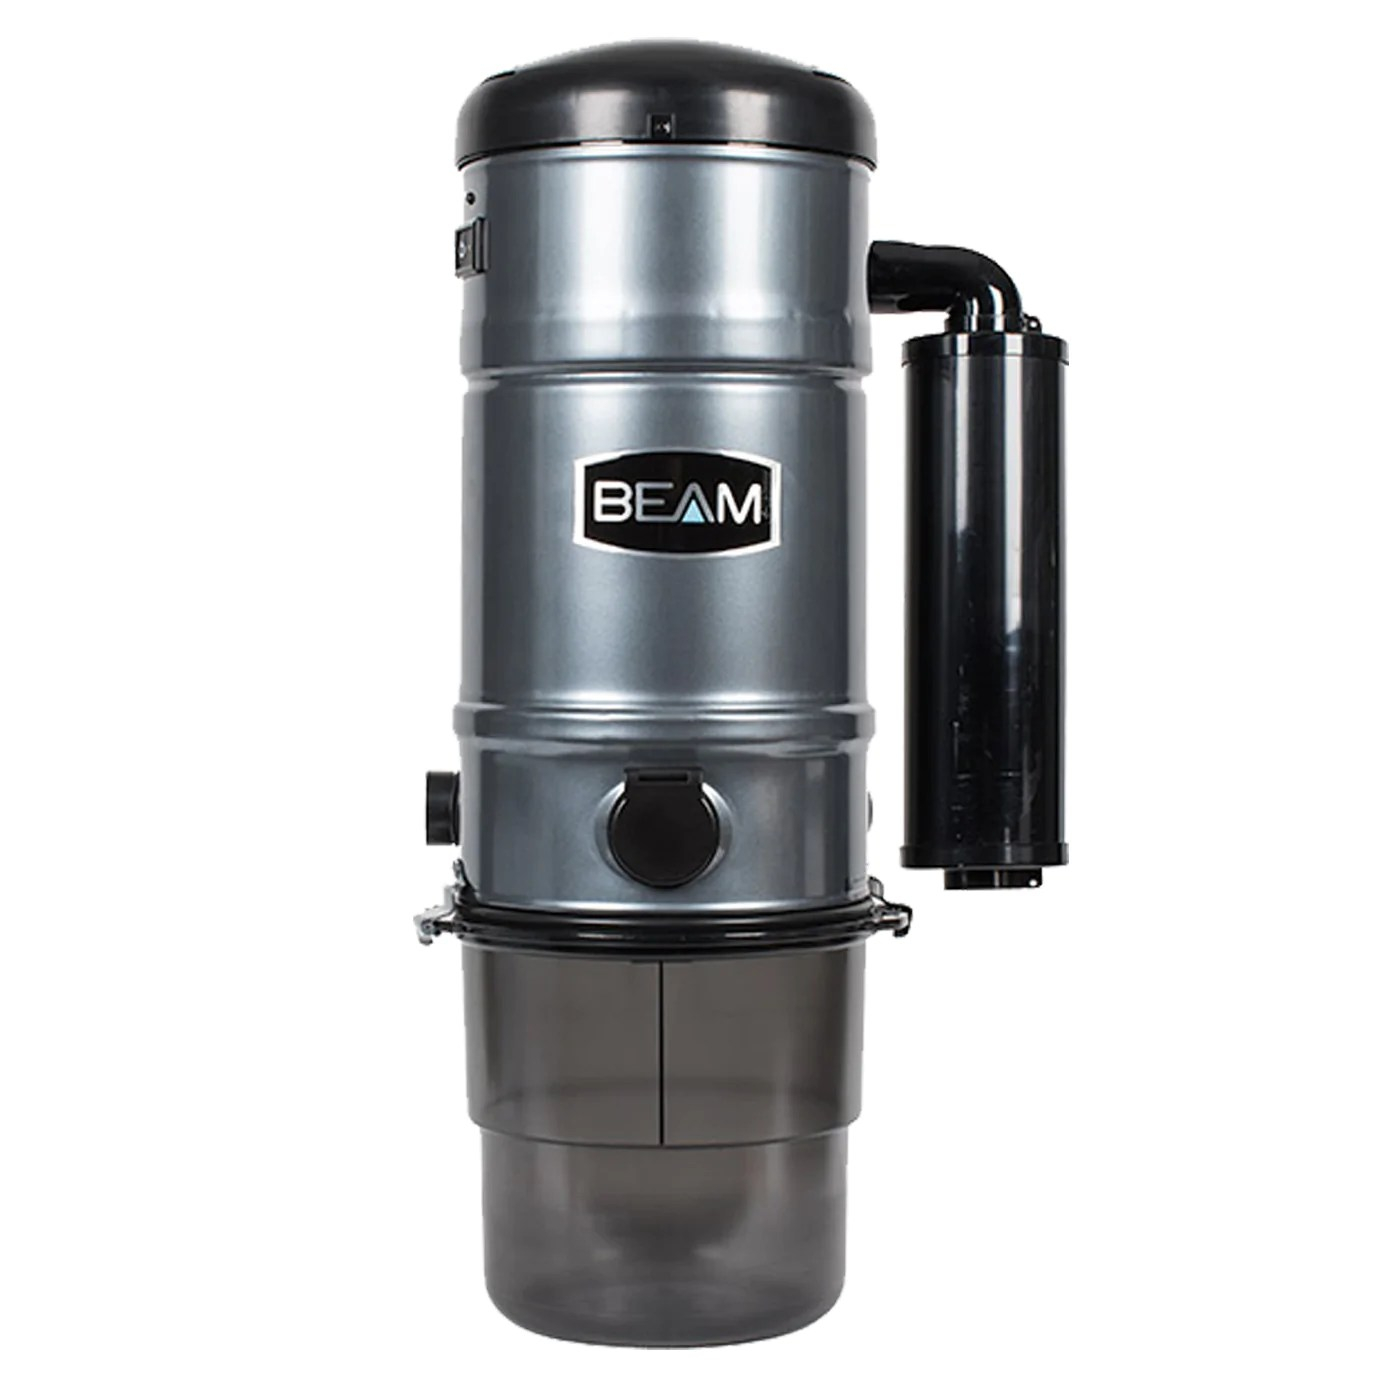 beam serenity 325d central vacuum canister [ 1400 x 1400 Pixel ]